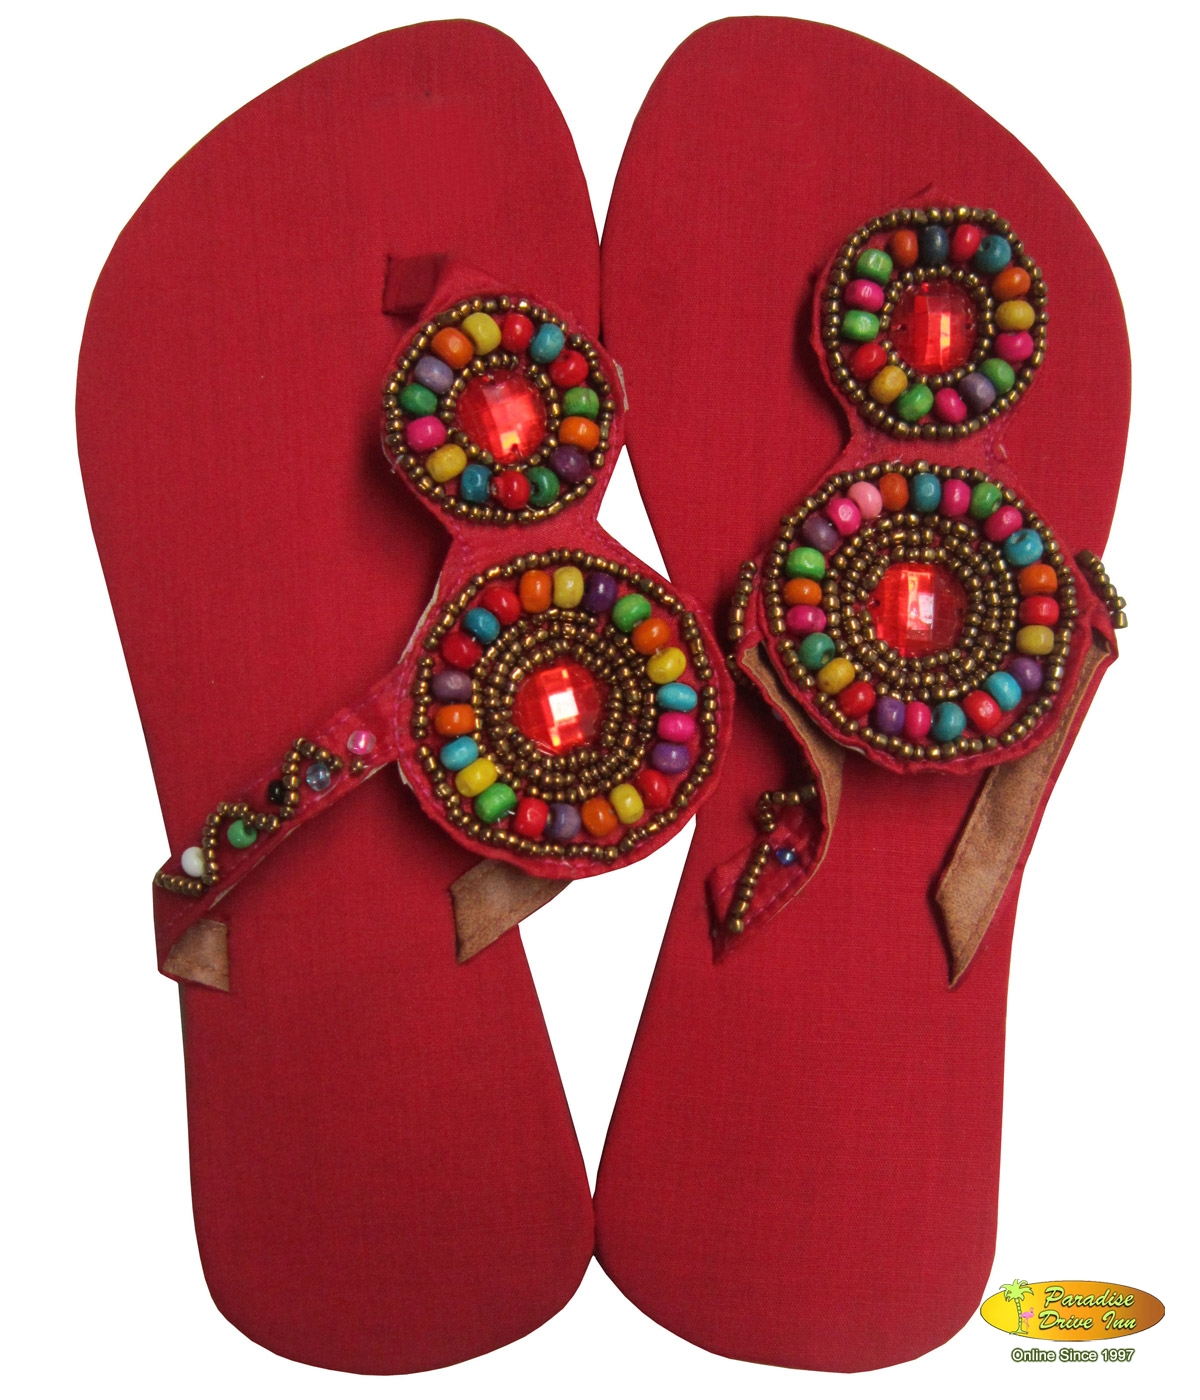 Bali Sandal, leather with glassbeads